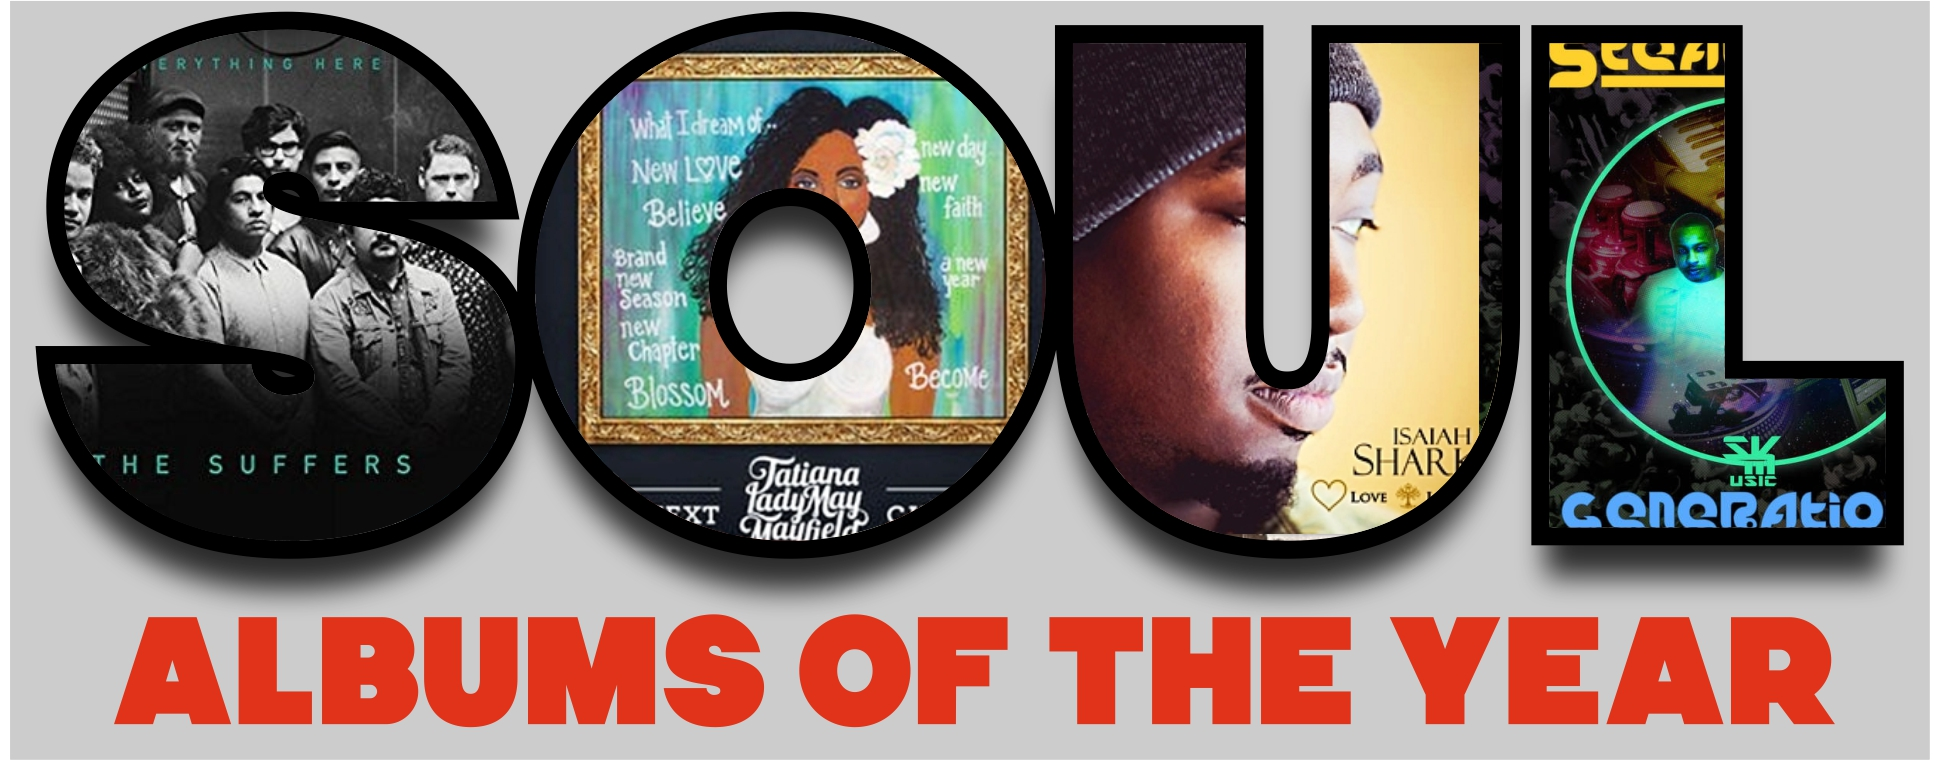 Albums and singles of the year 2018 - Soul Brother Records